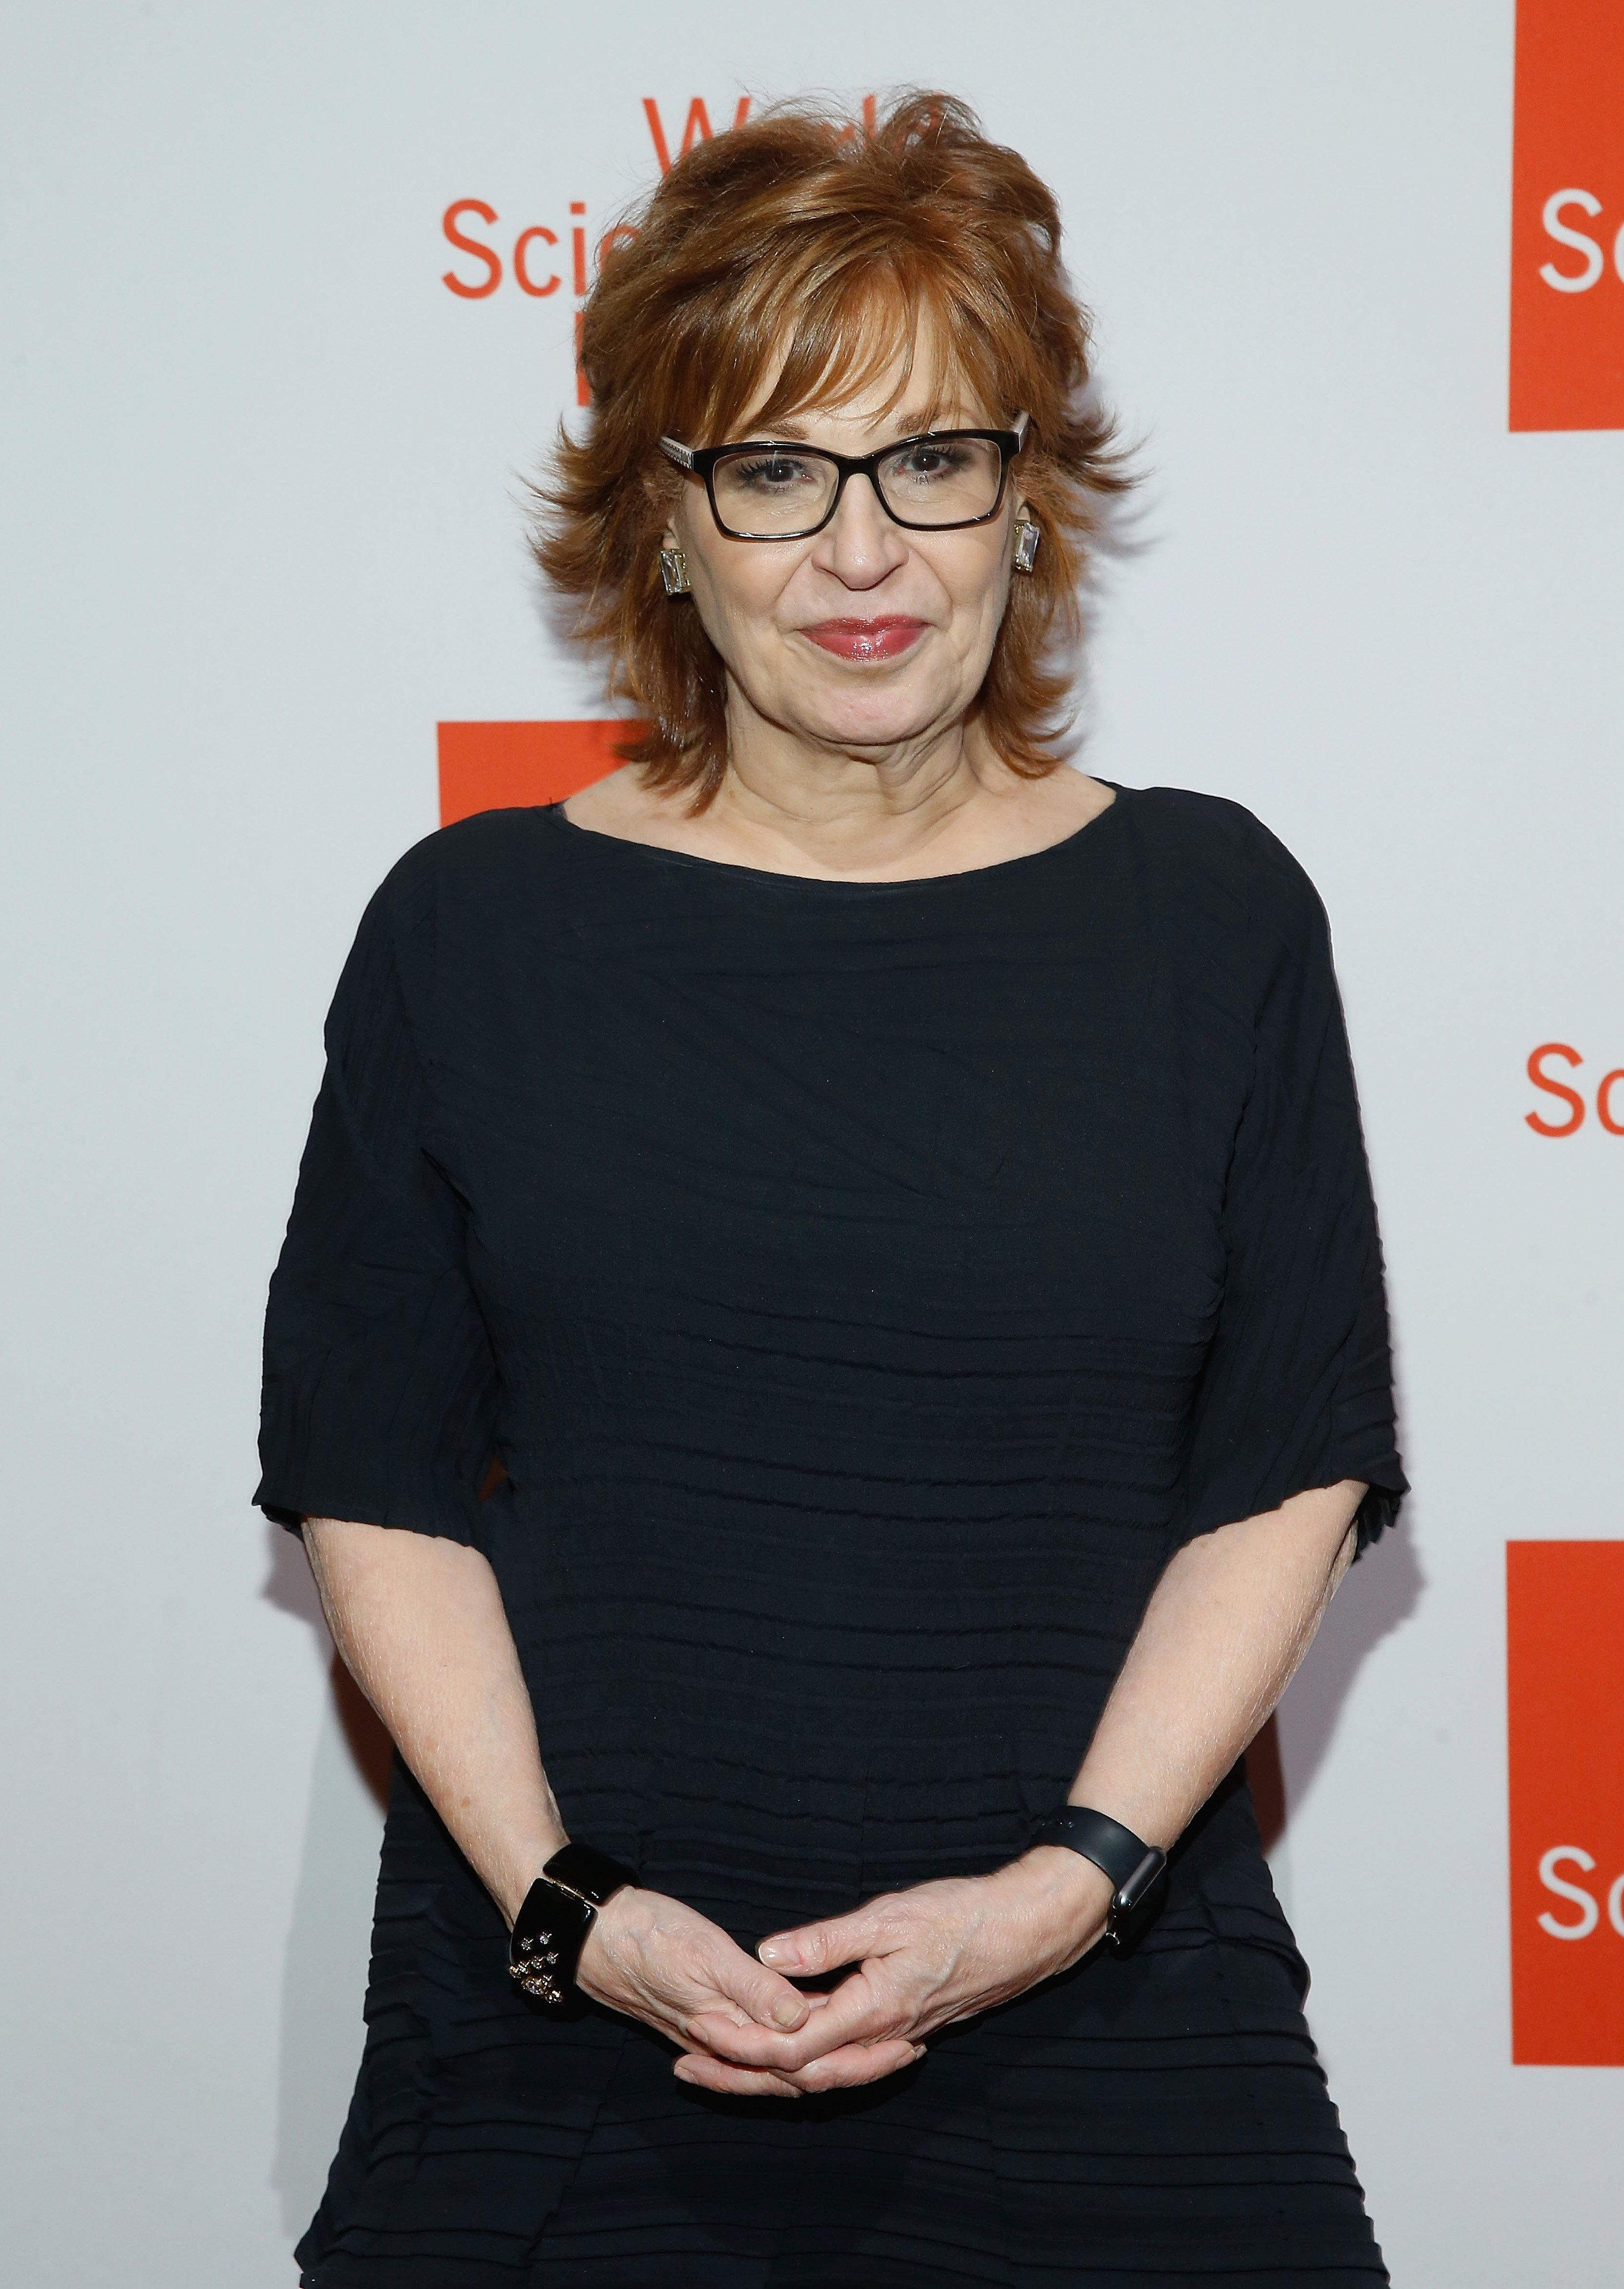 Joy Behar attends The World Science Festival 2016 Gala at Jazz at Lincoln Center on May 23, 2016. | Photo: GettyImages